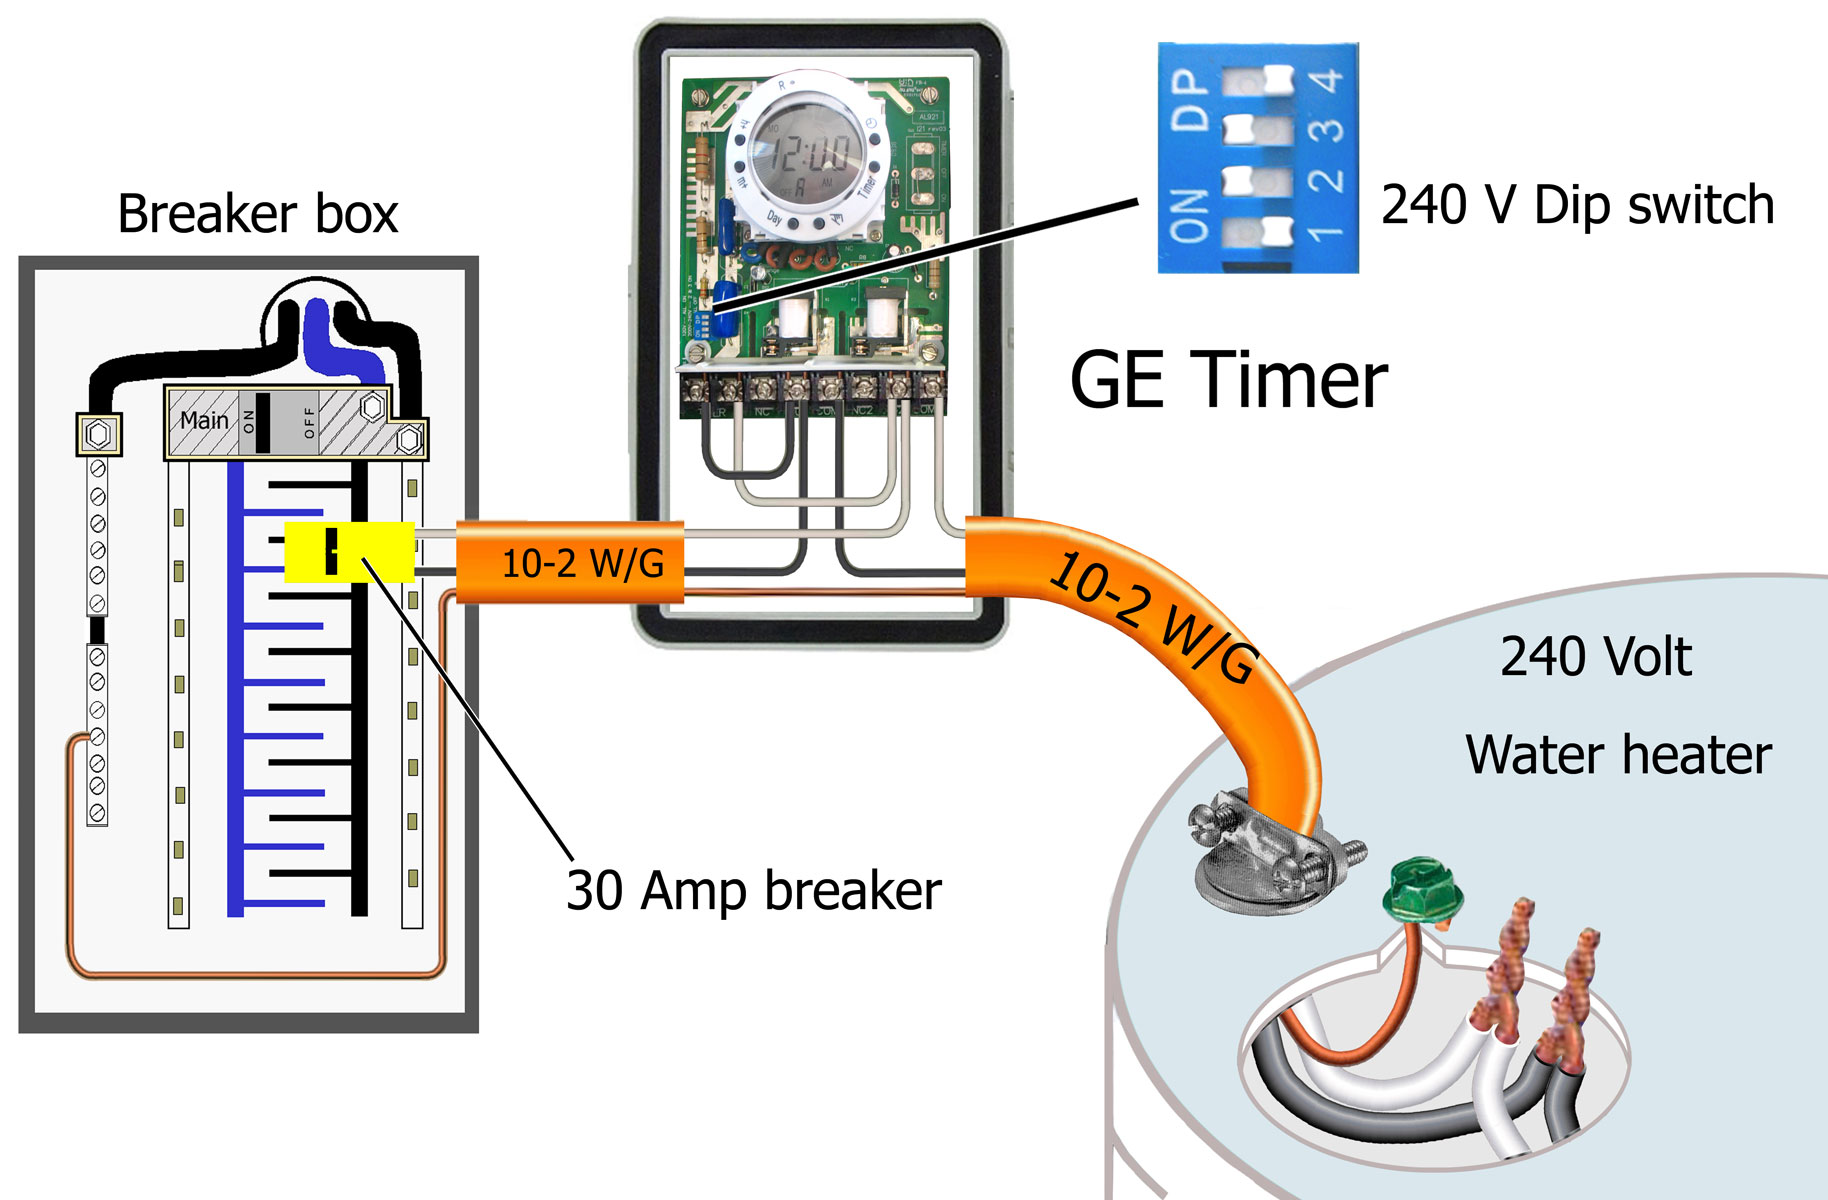 GE to water heater 500a how to wire ge 15136 timer ge water heater wiring diagram at bakdesigns.co